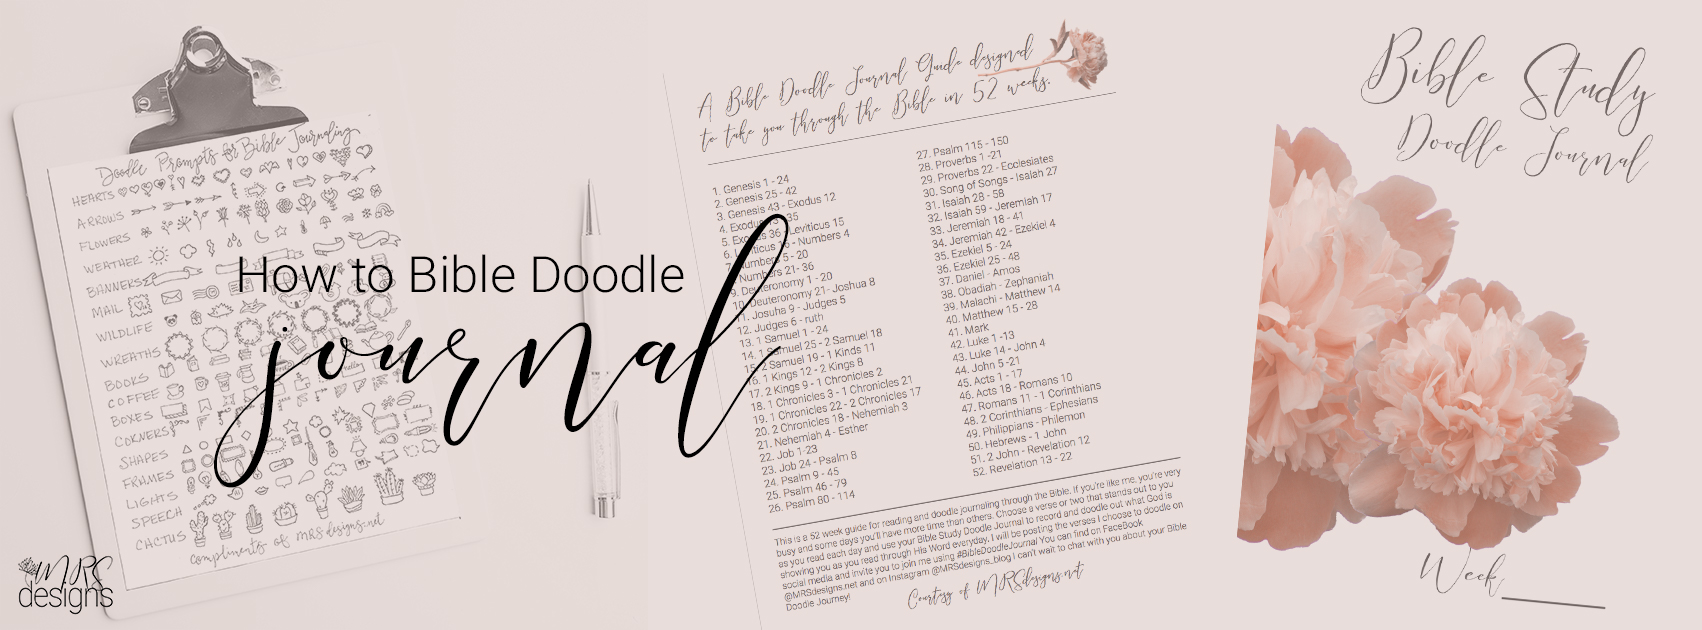 How to Bible Doodle Journal Feature Image MRSdesigns.net.jpg